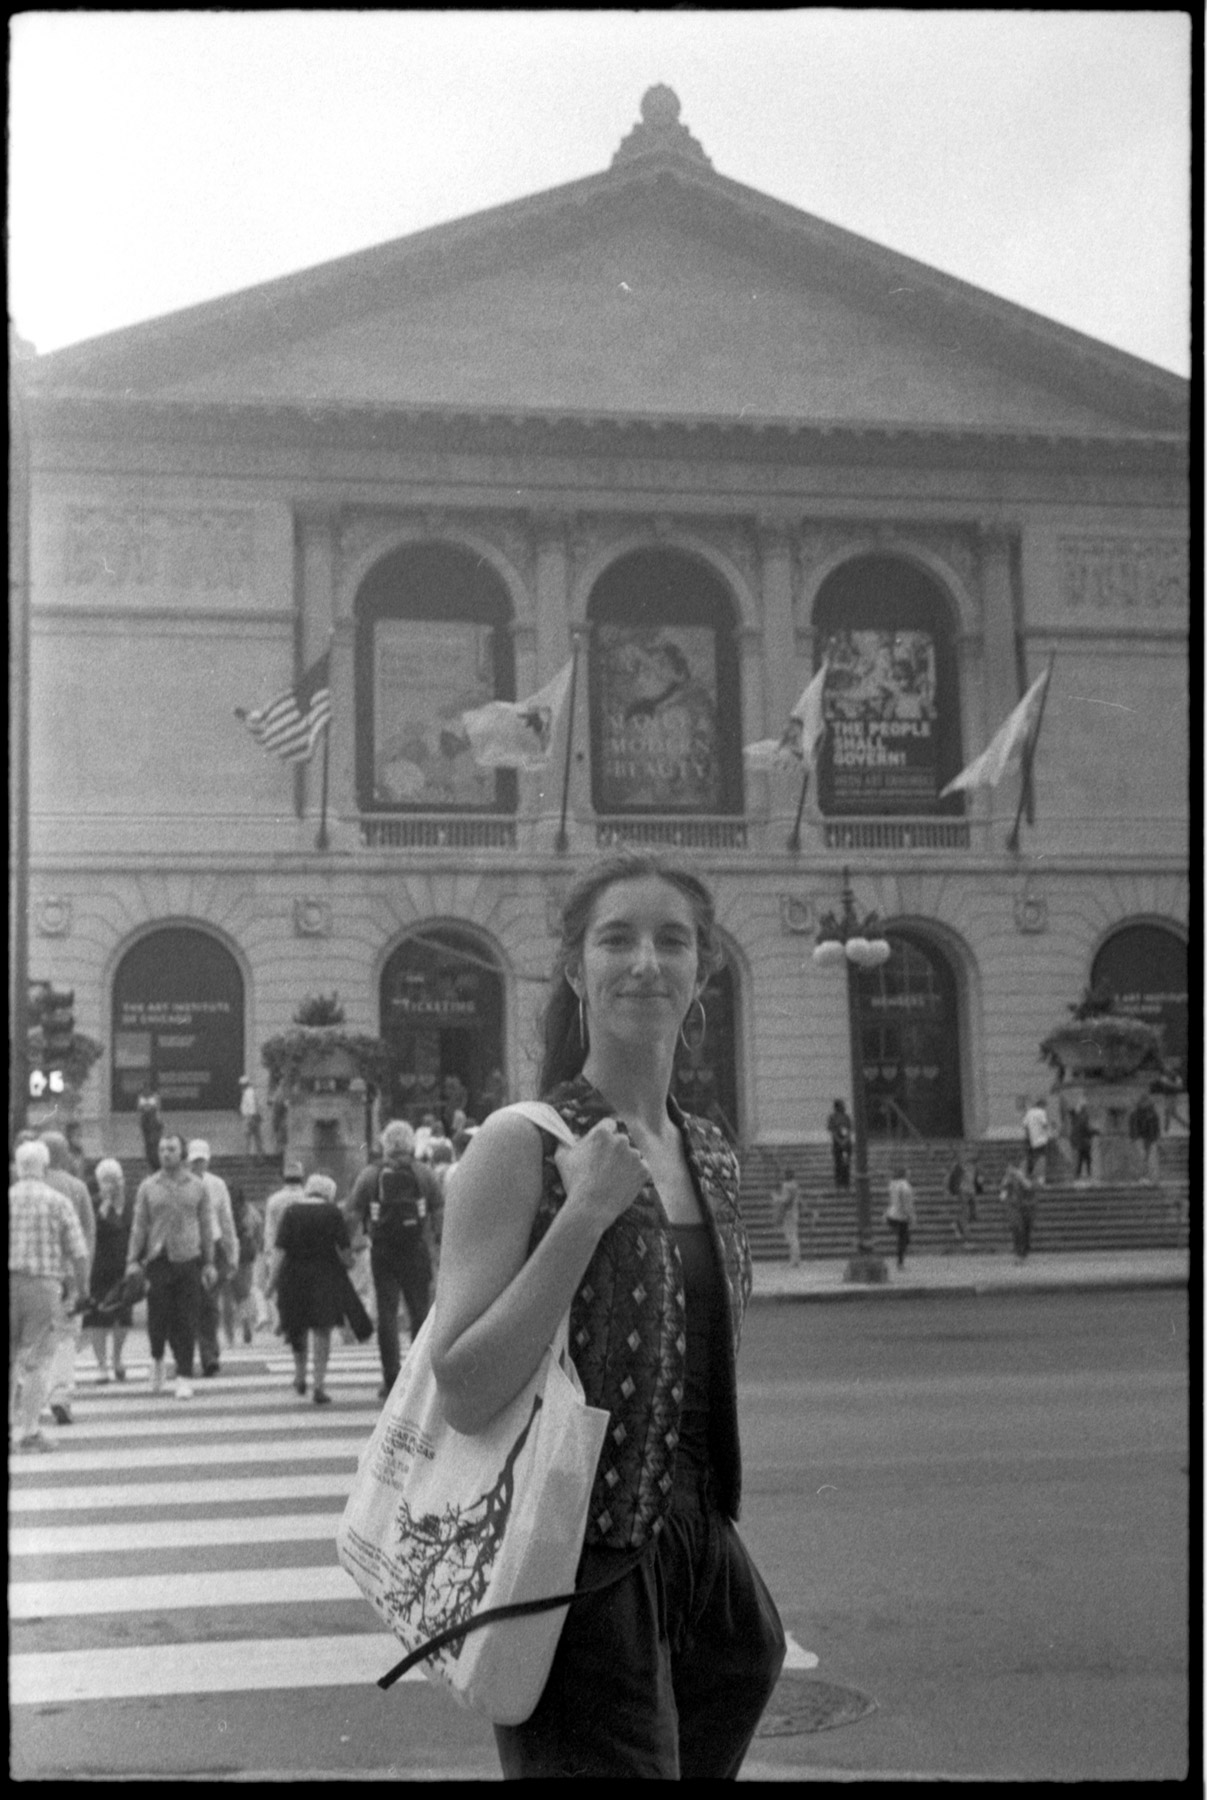 Chicago shot on Ilford HP5 400 35mm film shot by Luis Mendoza (@luismendozamx) on the Olympus 35SP